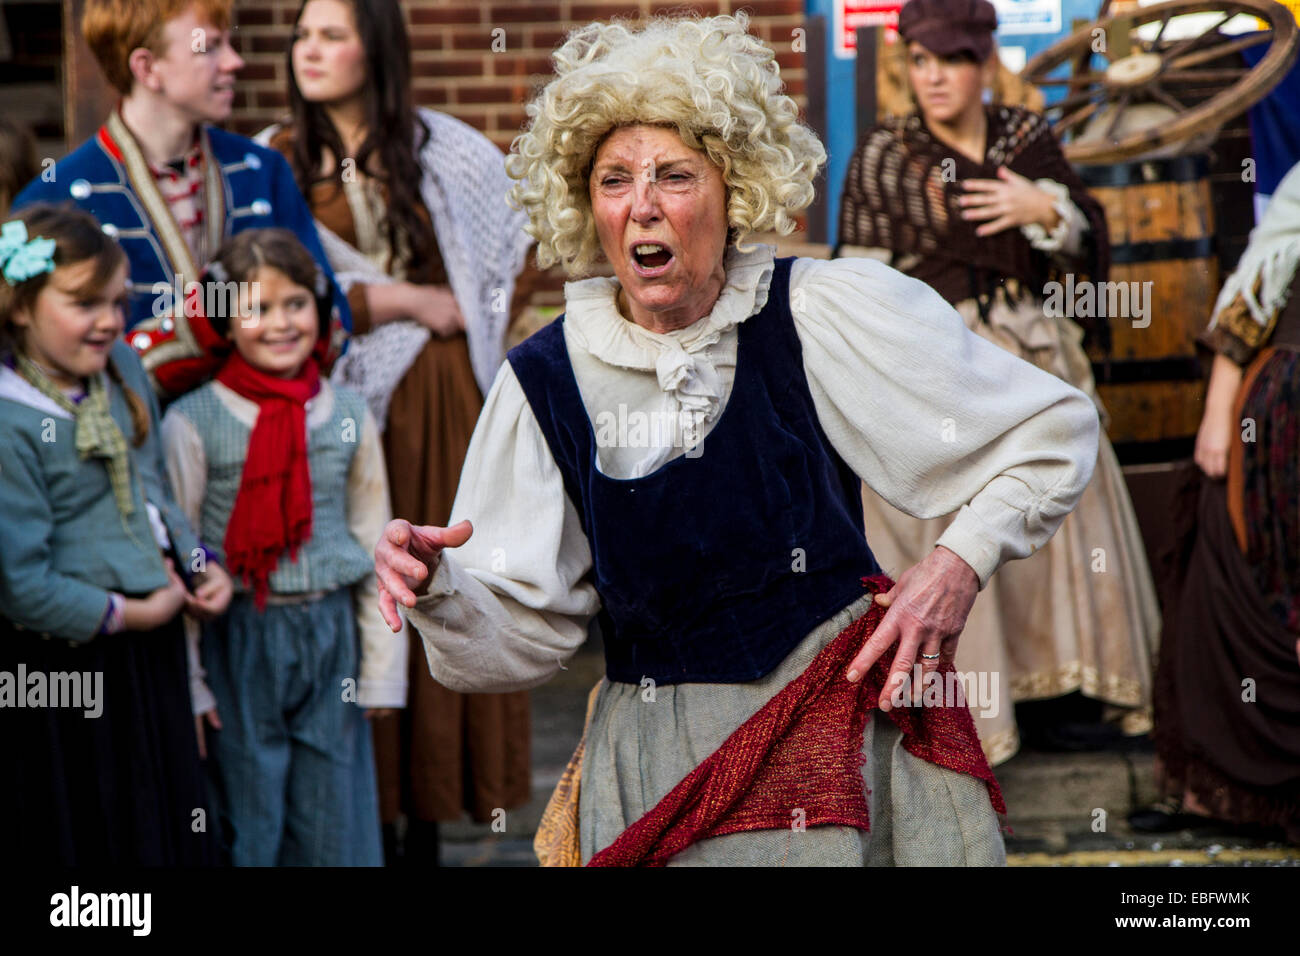 Victorian Festival of Christmas Portsmouth - Stock Image